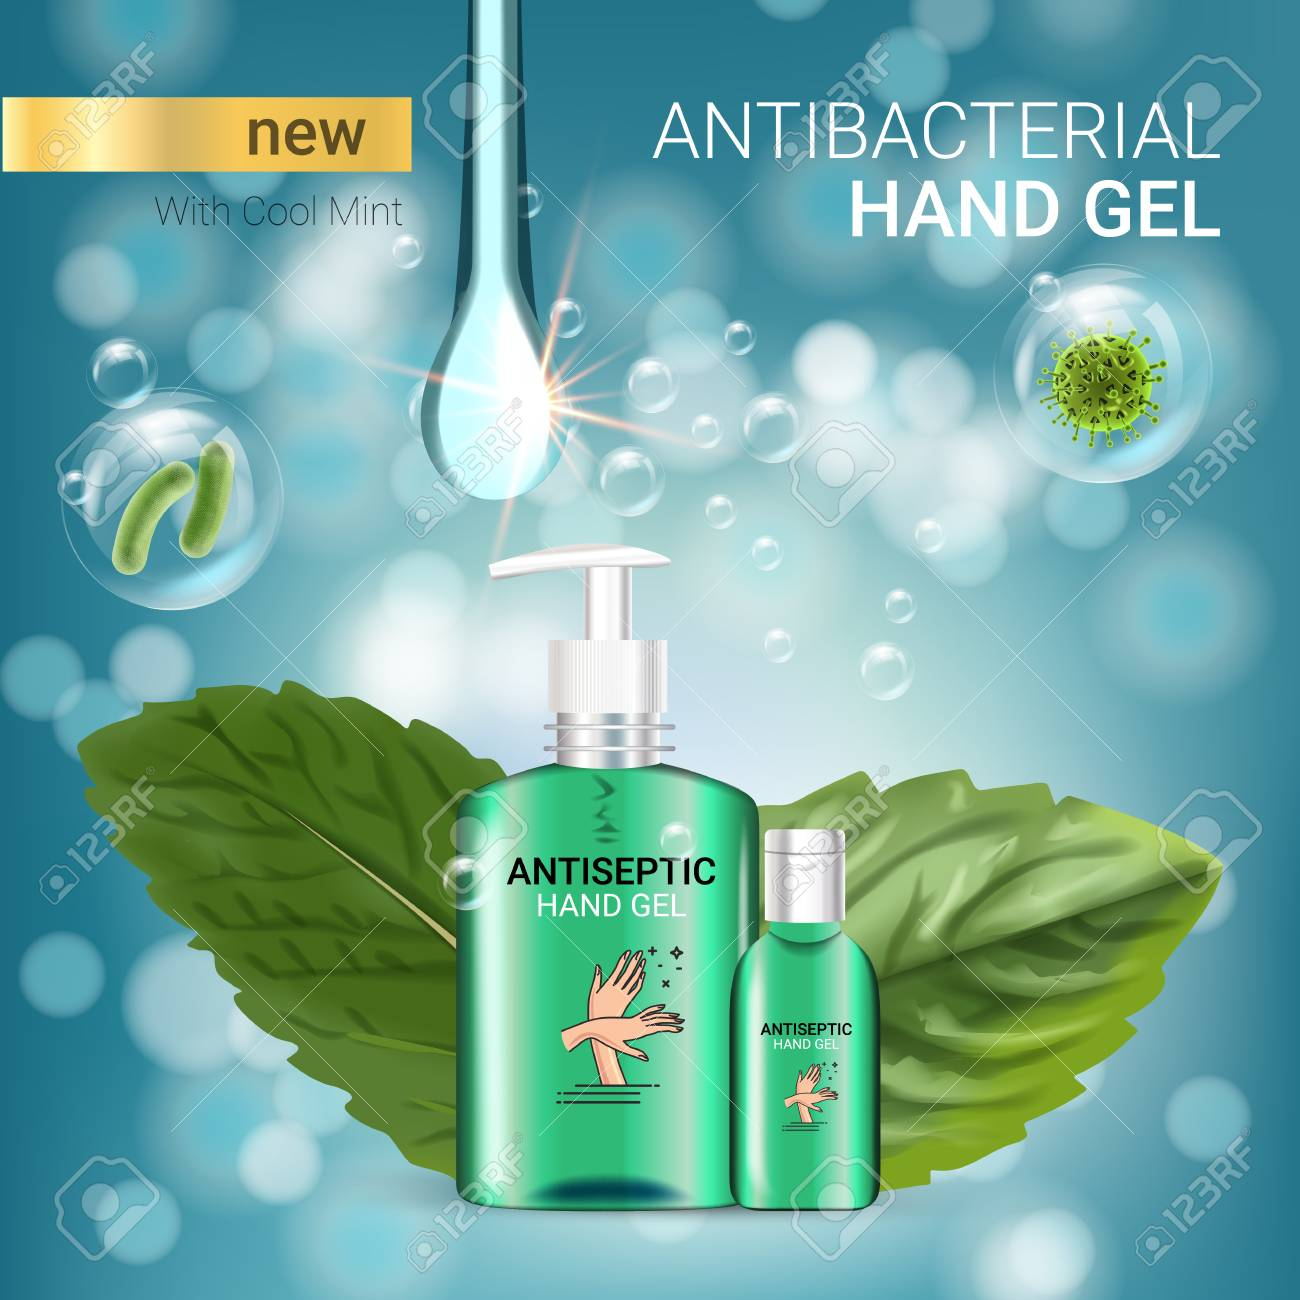 Cool mint flavor Antibacterial hand gel ads. Vector Illustration with antiseptic hand gel in bottles and mint leaves elements. Poster. - 79001009